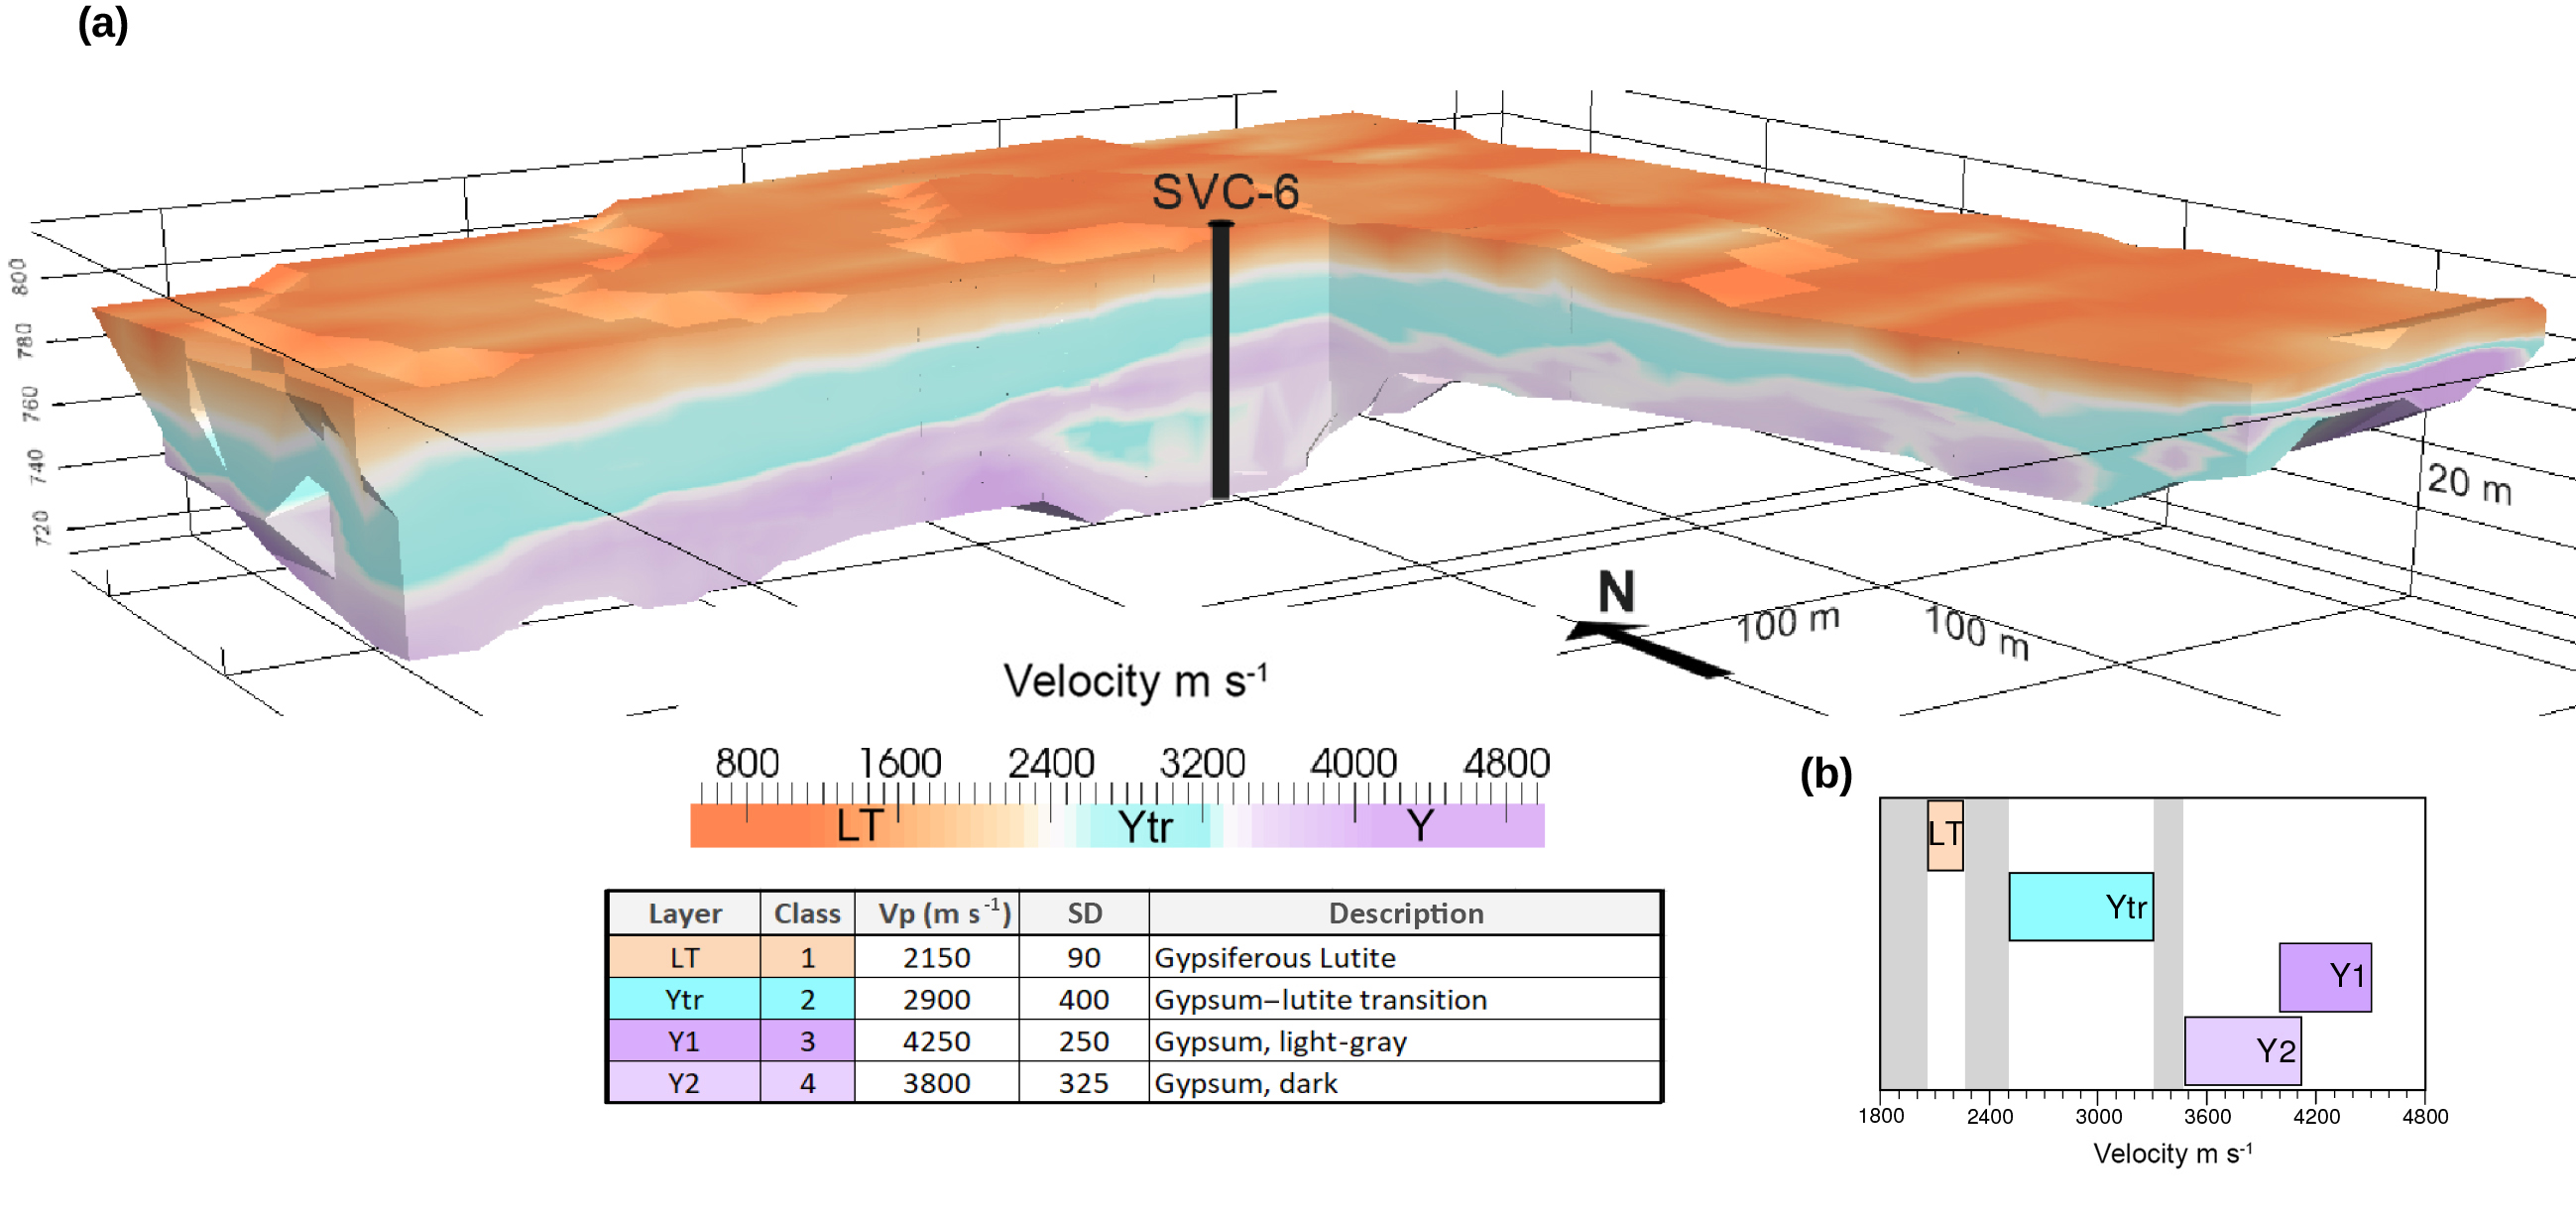 Se 3 D Seismic Travel Time Tomography Validation Of A Detailed Subsurface Model A Case Study Of The Zancara River Basin Cuenca Spain